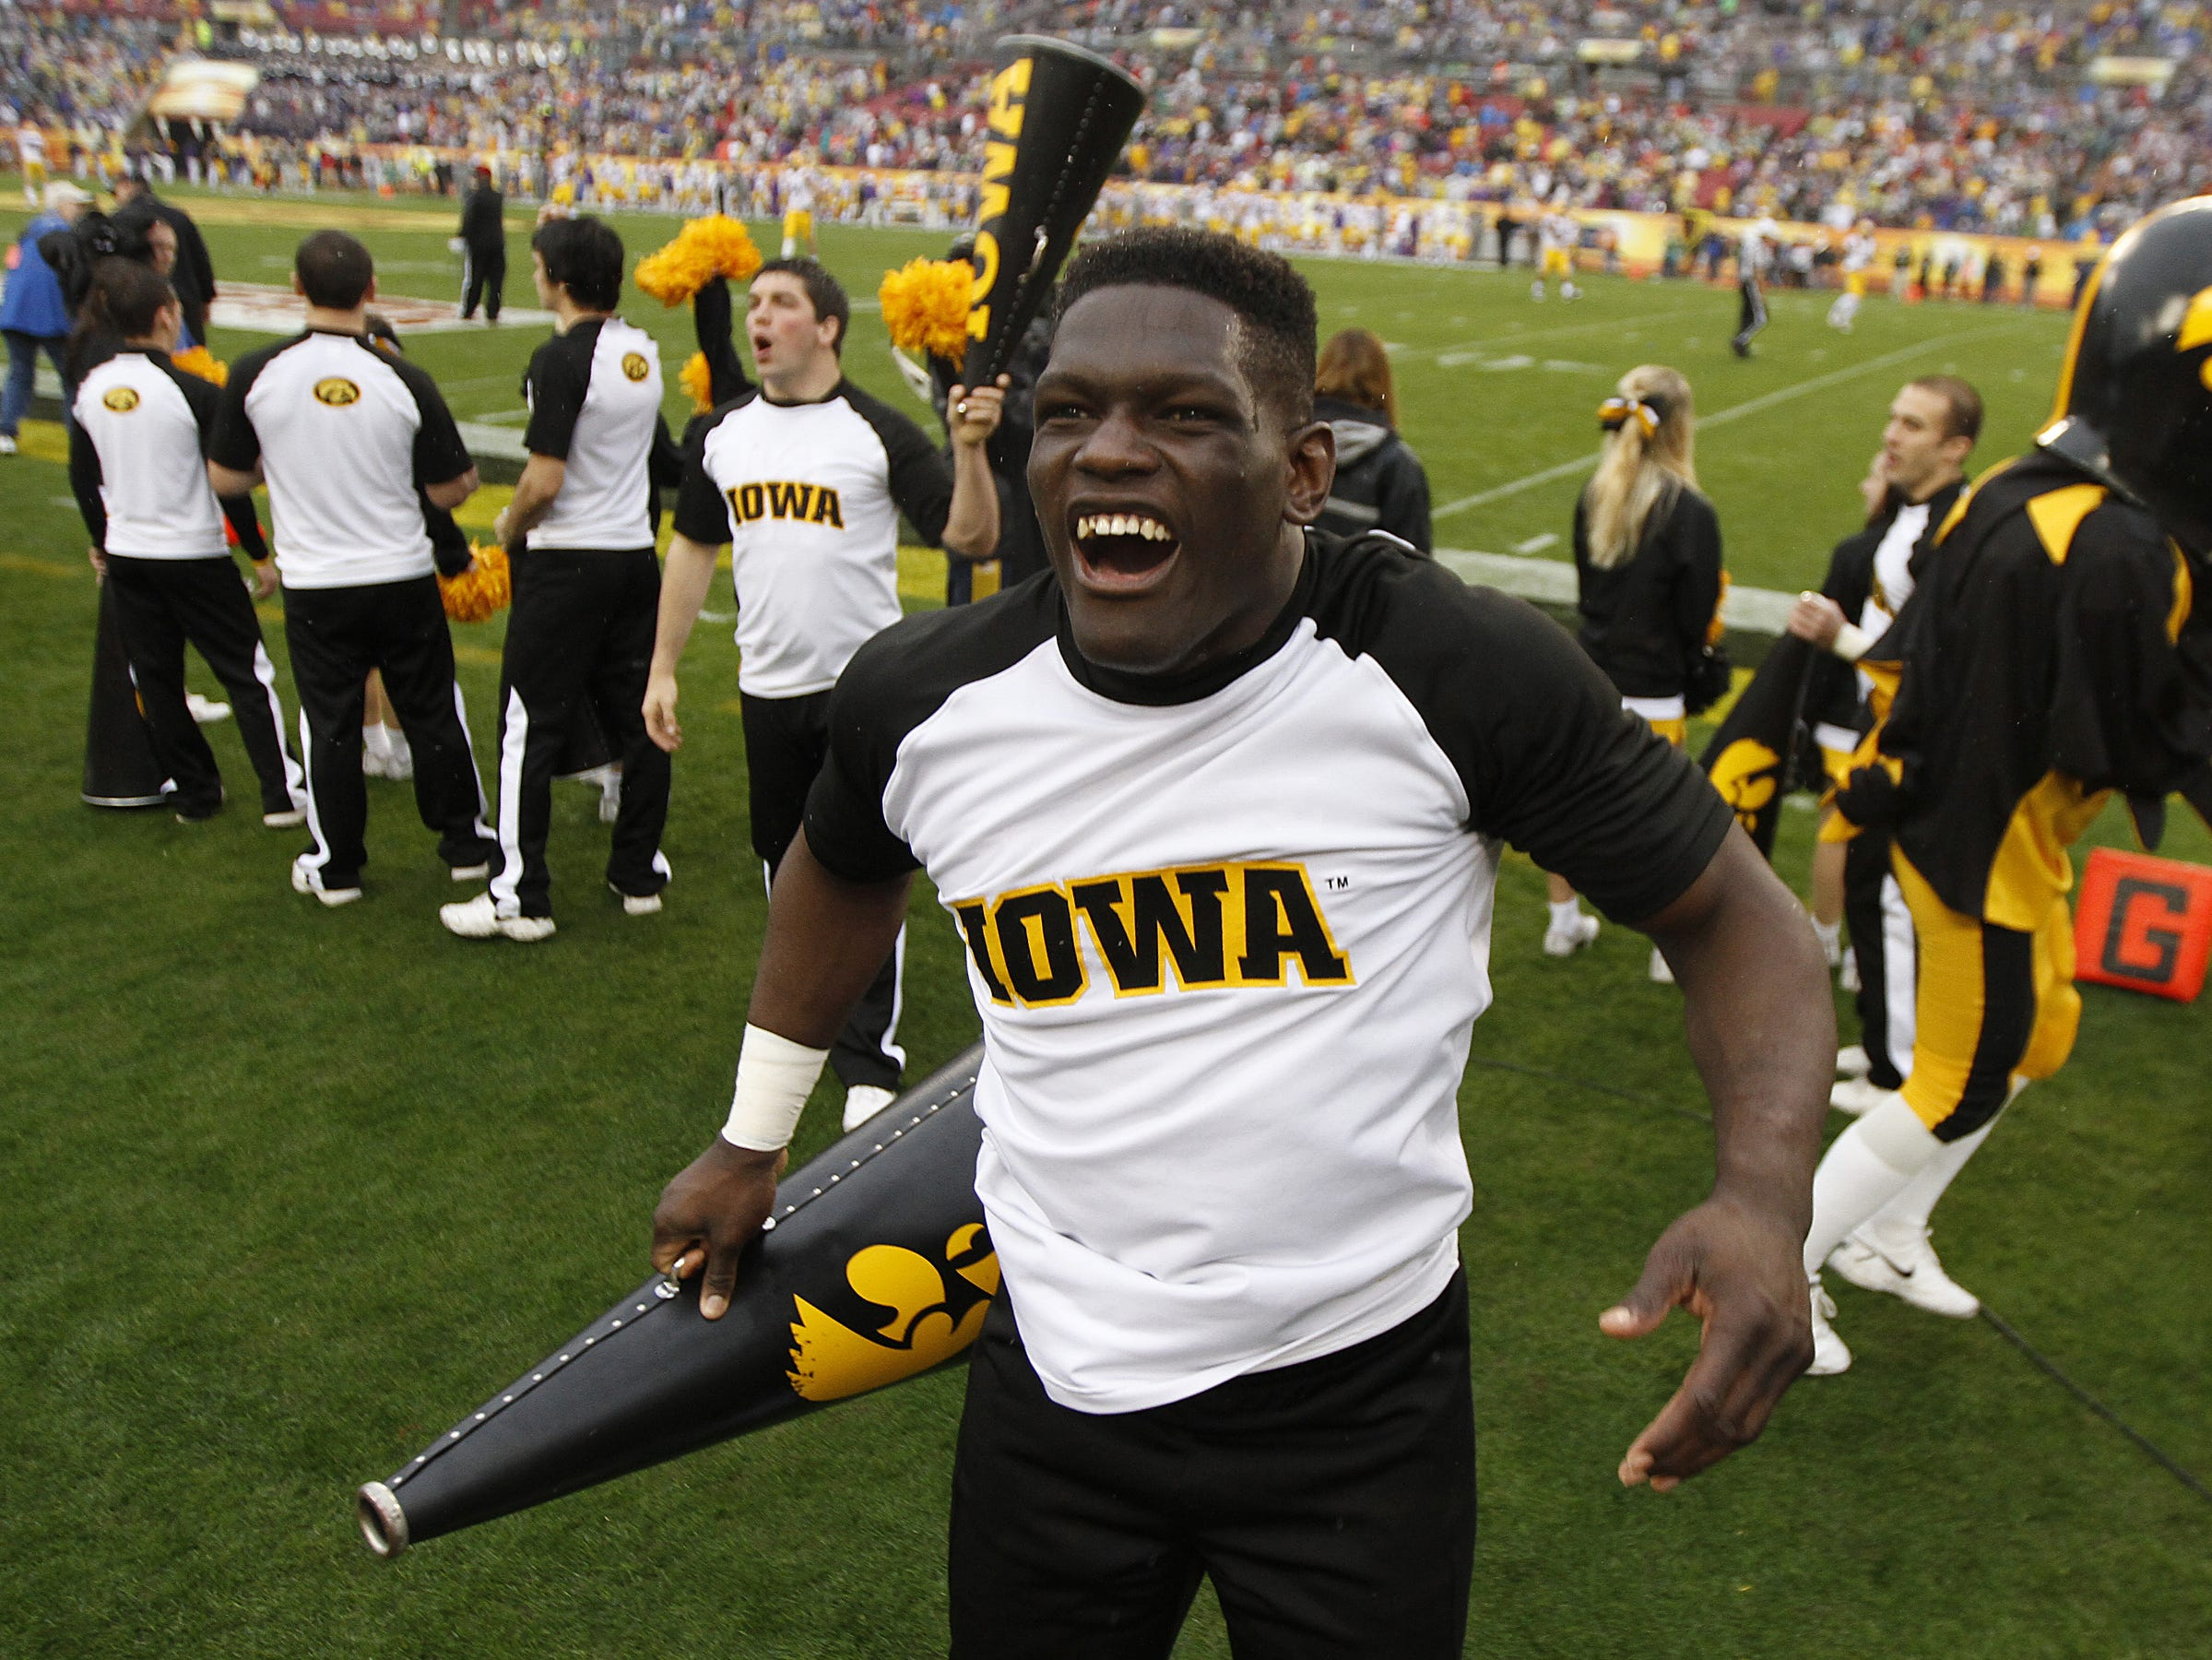 Iowa spirit squad member Oz Agbese, a Waterloo East grad, gets the Iowa crowd fired up prior to the start of the Outback Bowl against LSU on Wednesday, Jan. 1, 2014, in Tampa, Florida. (Bryon Houlgrave/The Register)